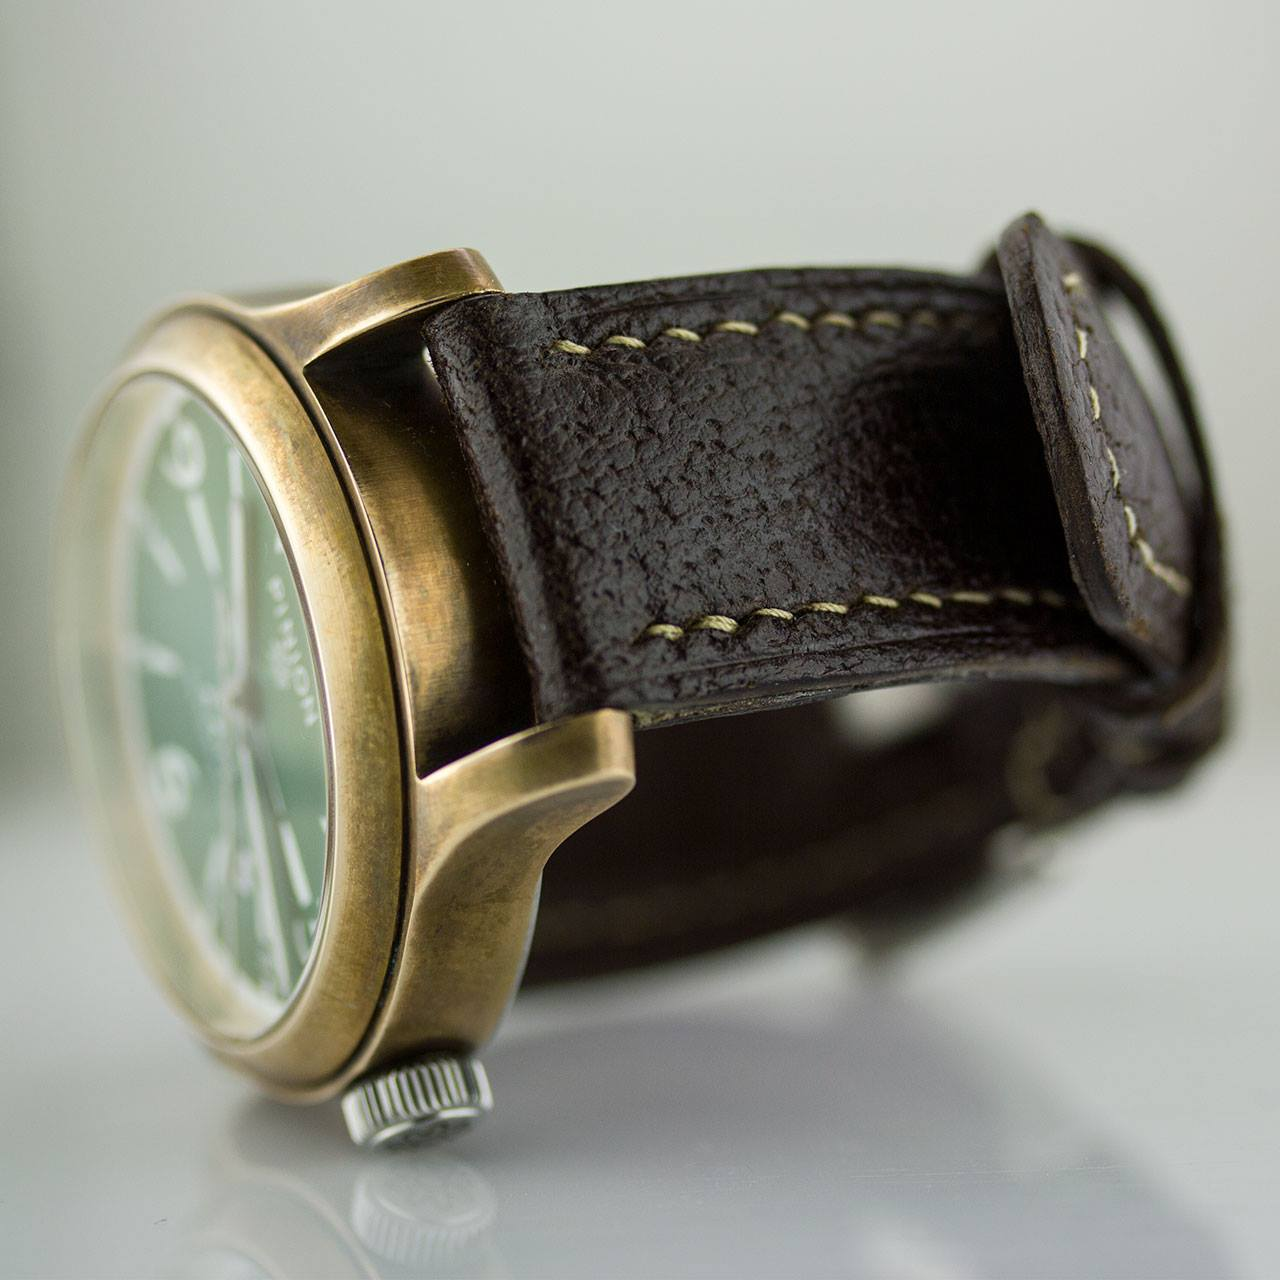 Pinion handmade leather watch strap